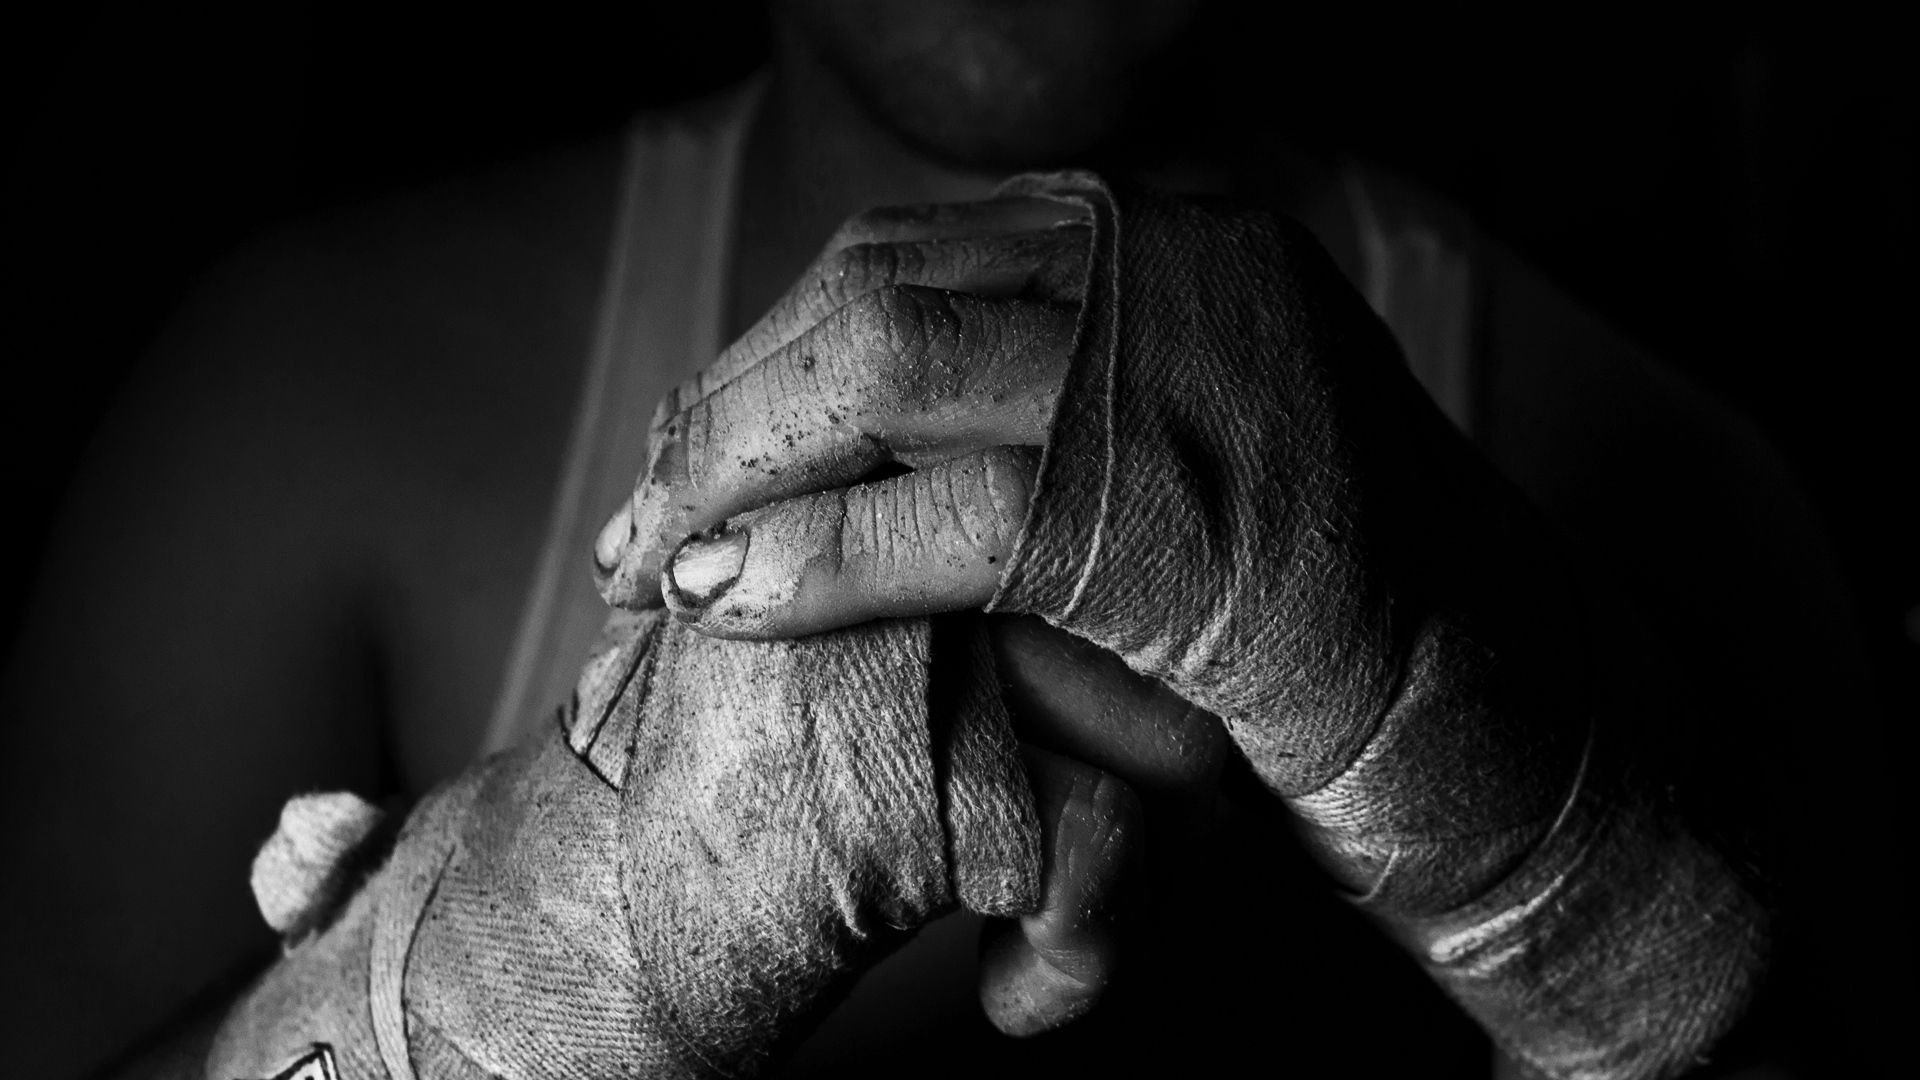 80823 Screensavers and Wallpapers Bw for phone. Download Sports, Hands, Bw, Chb, Fighter, Bandages pictures for free